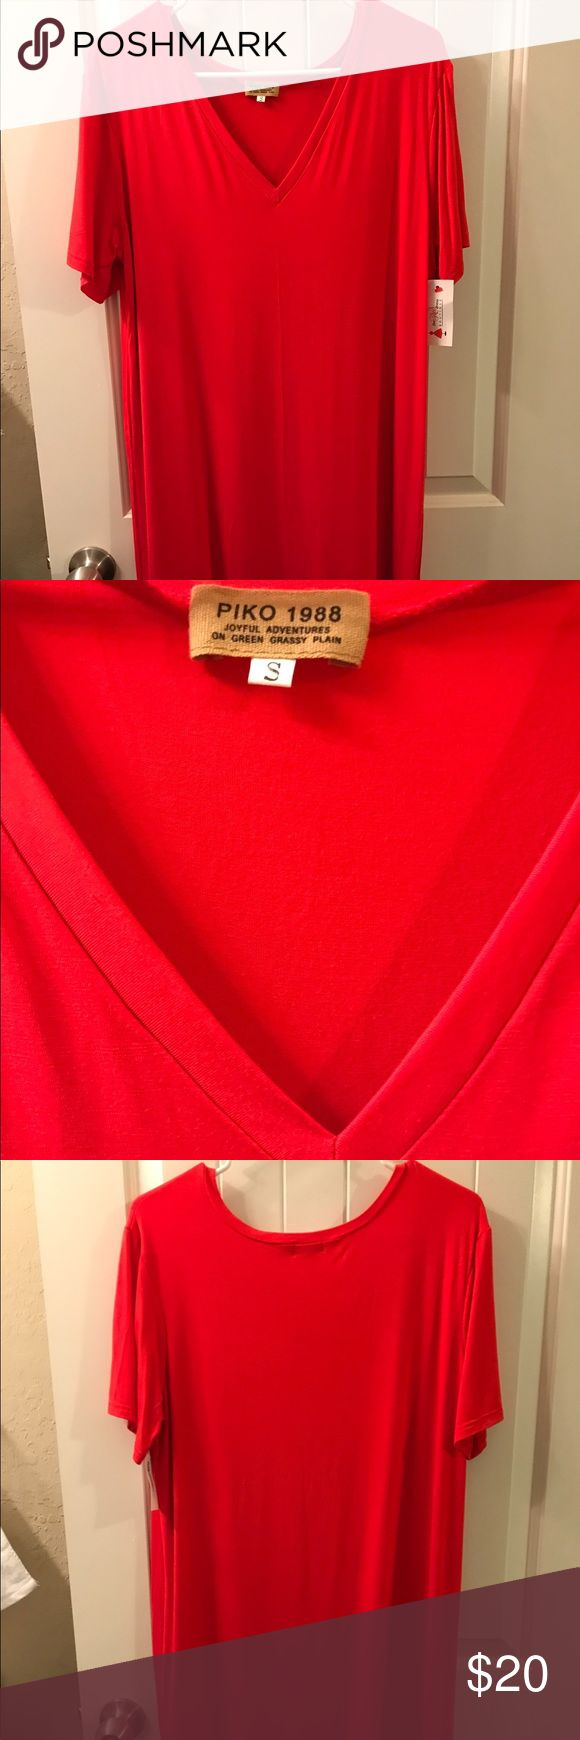 Dress Red Dress boutique red Tee shirt dress. Super cute! Never worn tag still on, ordered two by accident! Piko 1988 Dresses Midi